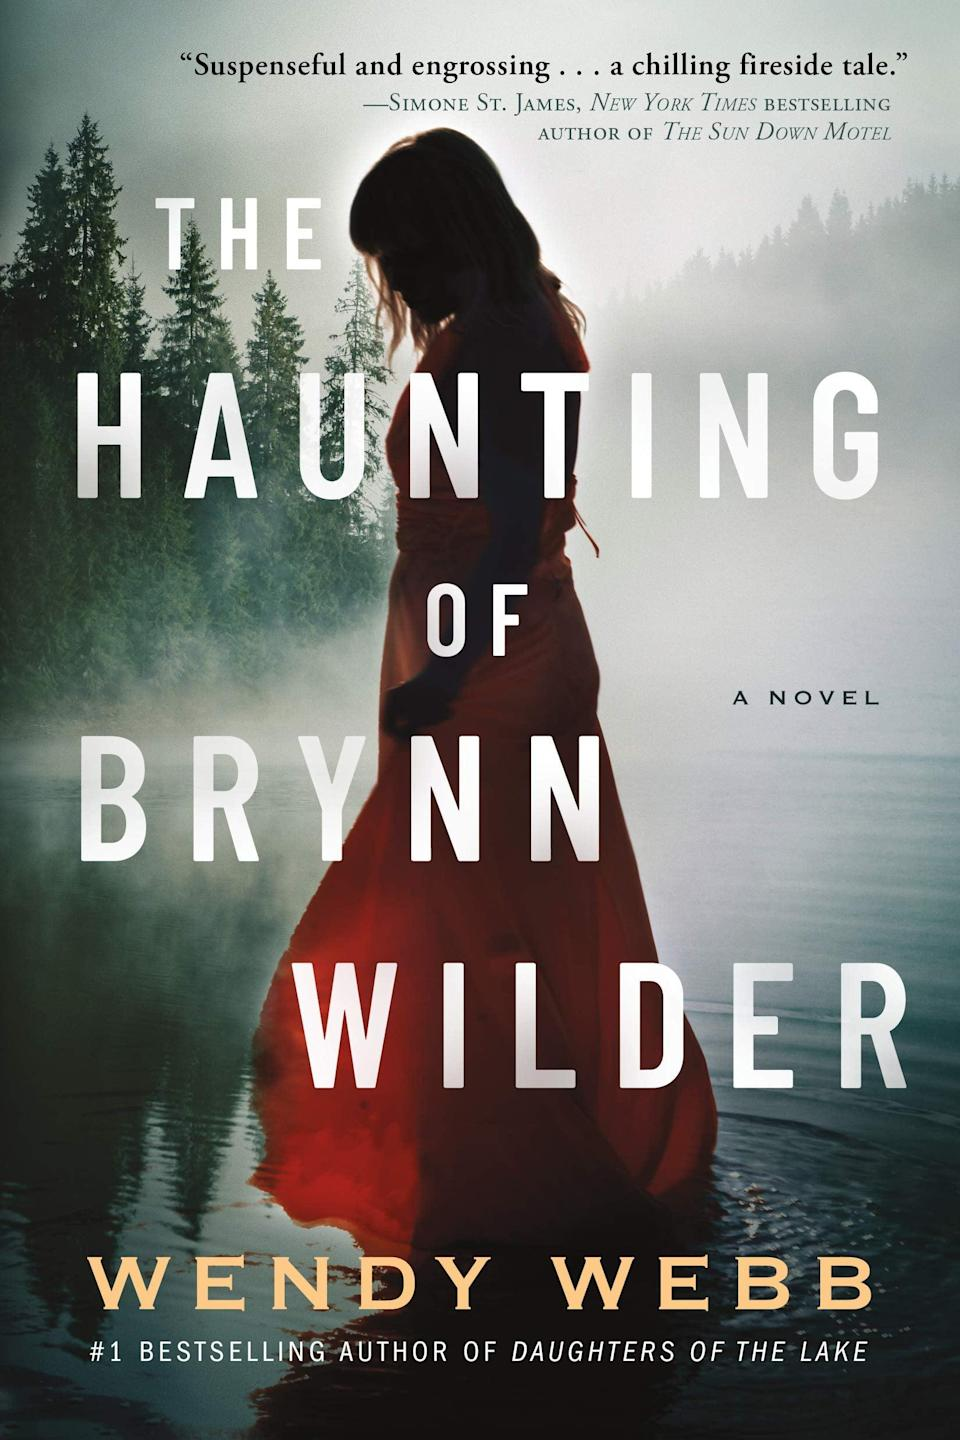 <p>If you love mysteries with a hint of supernatural happenings, then prepare to lose yourself in Wendy Webb's lusciously written <span><strong>The Haunting of Brynn Wilder</strong></span>. A loss prompts Brynn to spend her summer in a boardinghouse full of strange characters, but her relaxing getaway quickly turns into an eerie journey of love as she becomes drawn to a tattooed man who seems to be followed by death wherever he goes. </p> <p><em>Out Nov. 1</em></p>